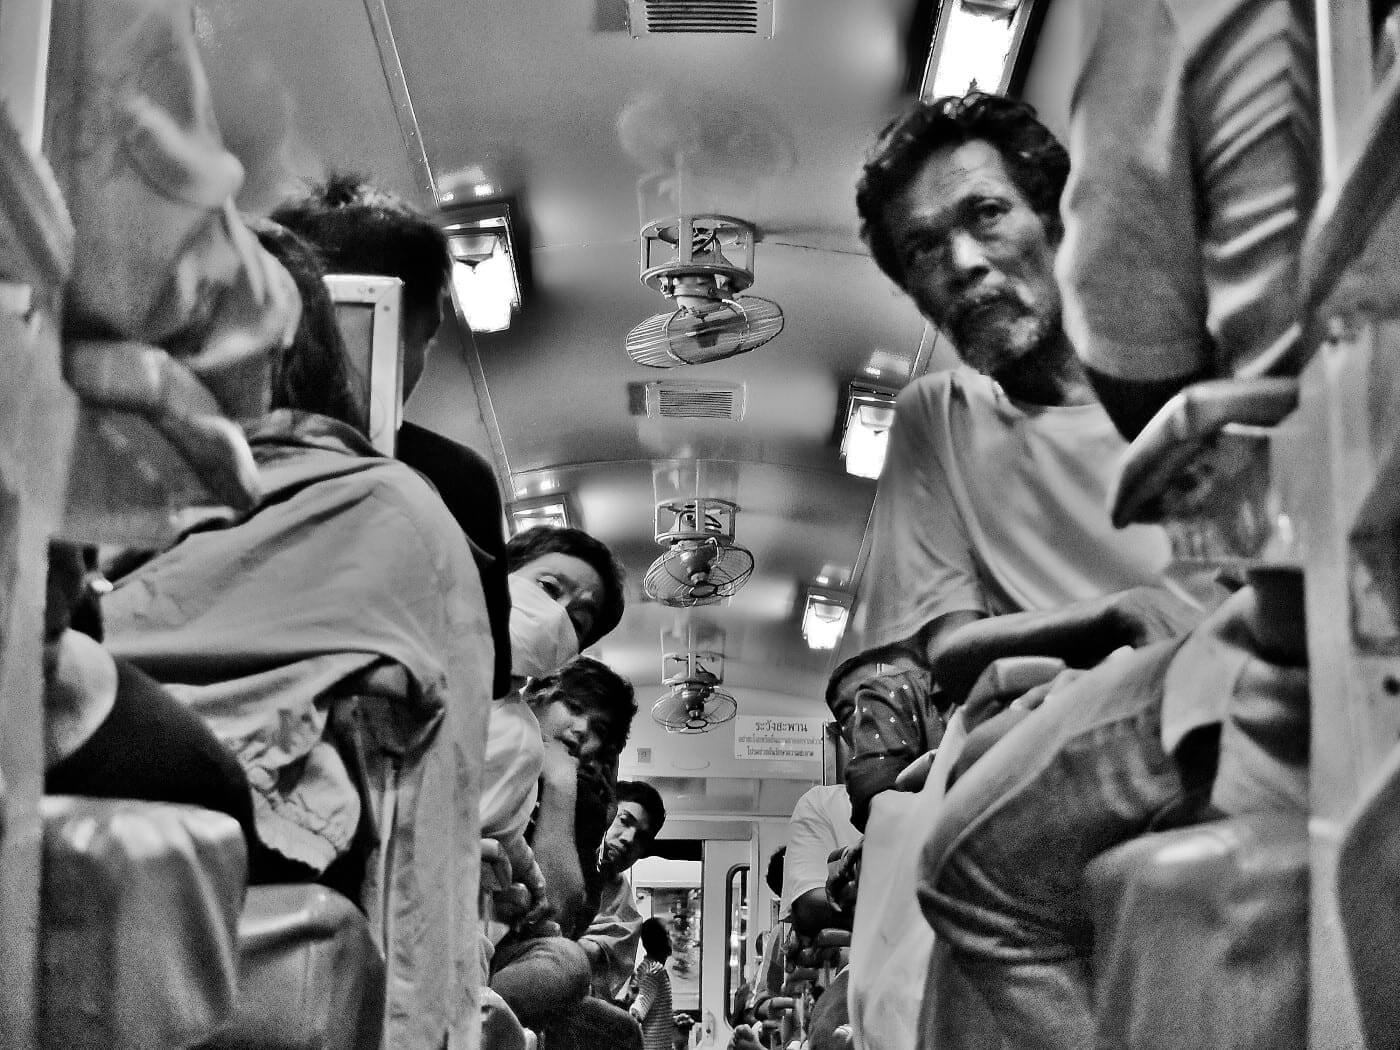 people in the train in bangkok thailand